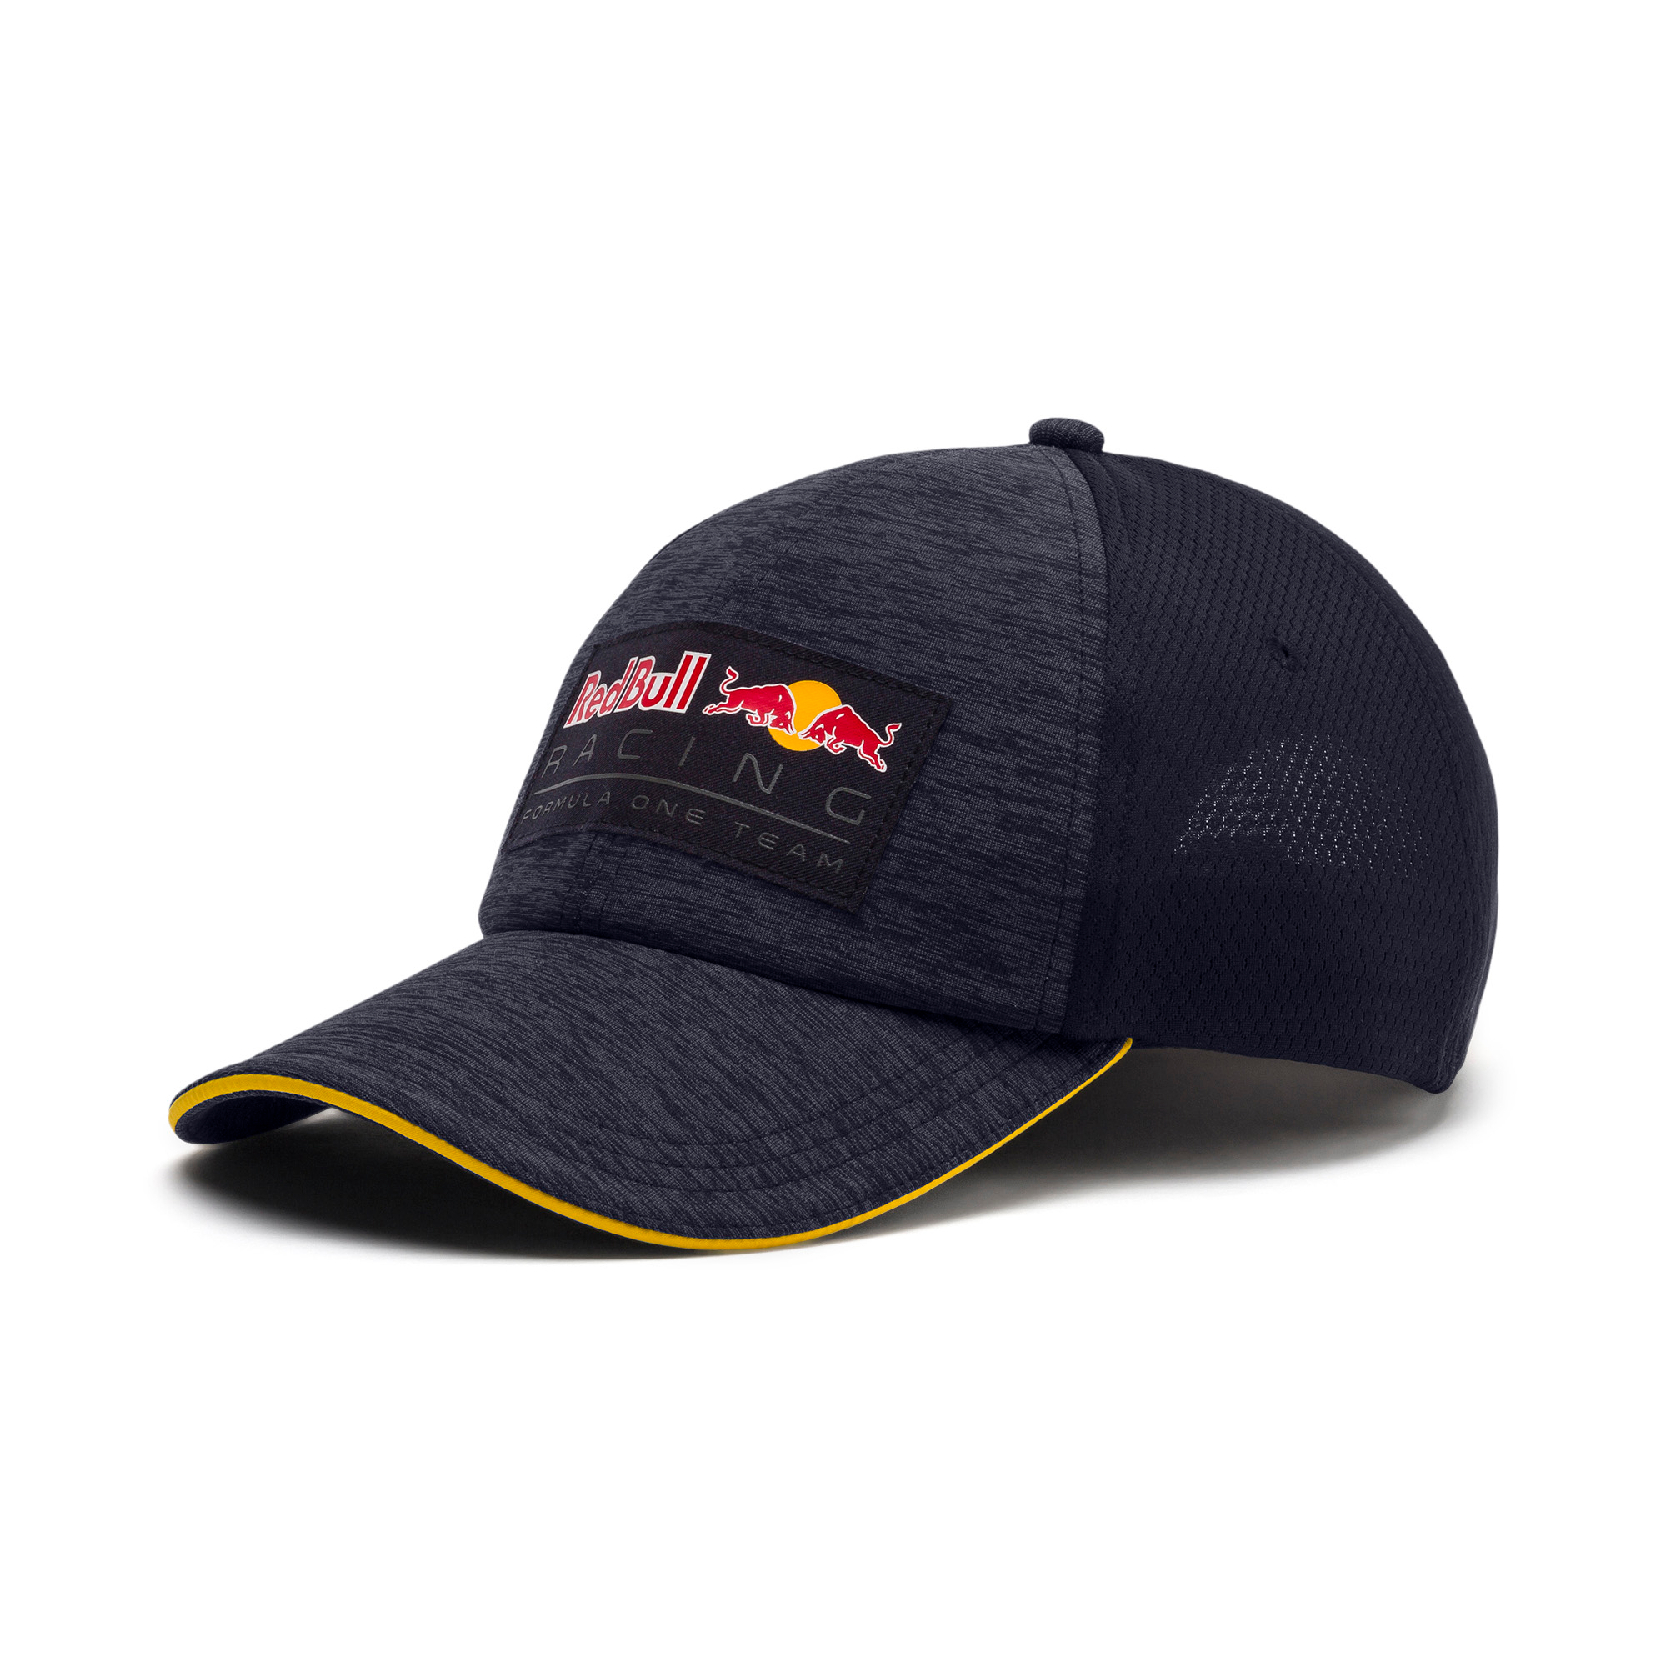 Details about Red Bull Racing F1 Puma Baseball Cap NAVY Hat Formula One  Adults One Size